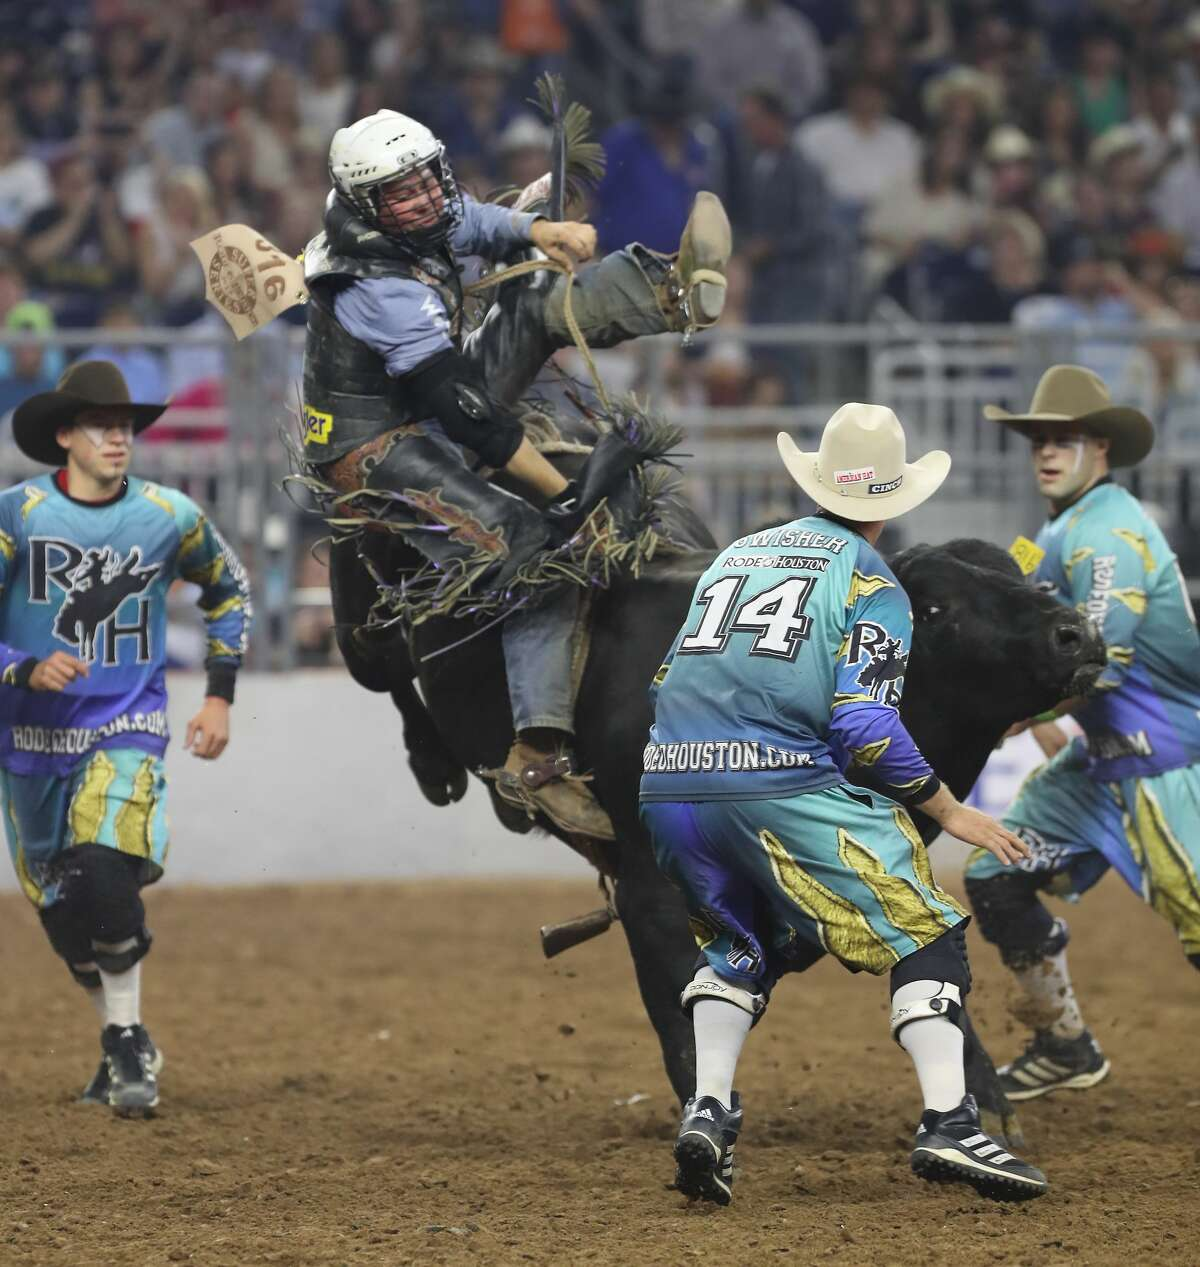 Trey Benton III is thrown by Sandy's Dream during the Super Series IV, Championship Round Saturday, March 18, 2017, in Houston. ( Steve Gonzales / Houston Chronicle )